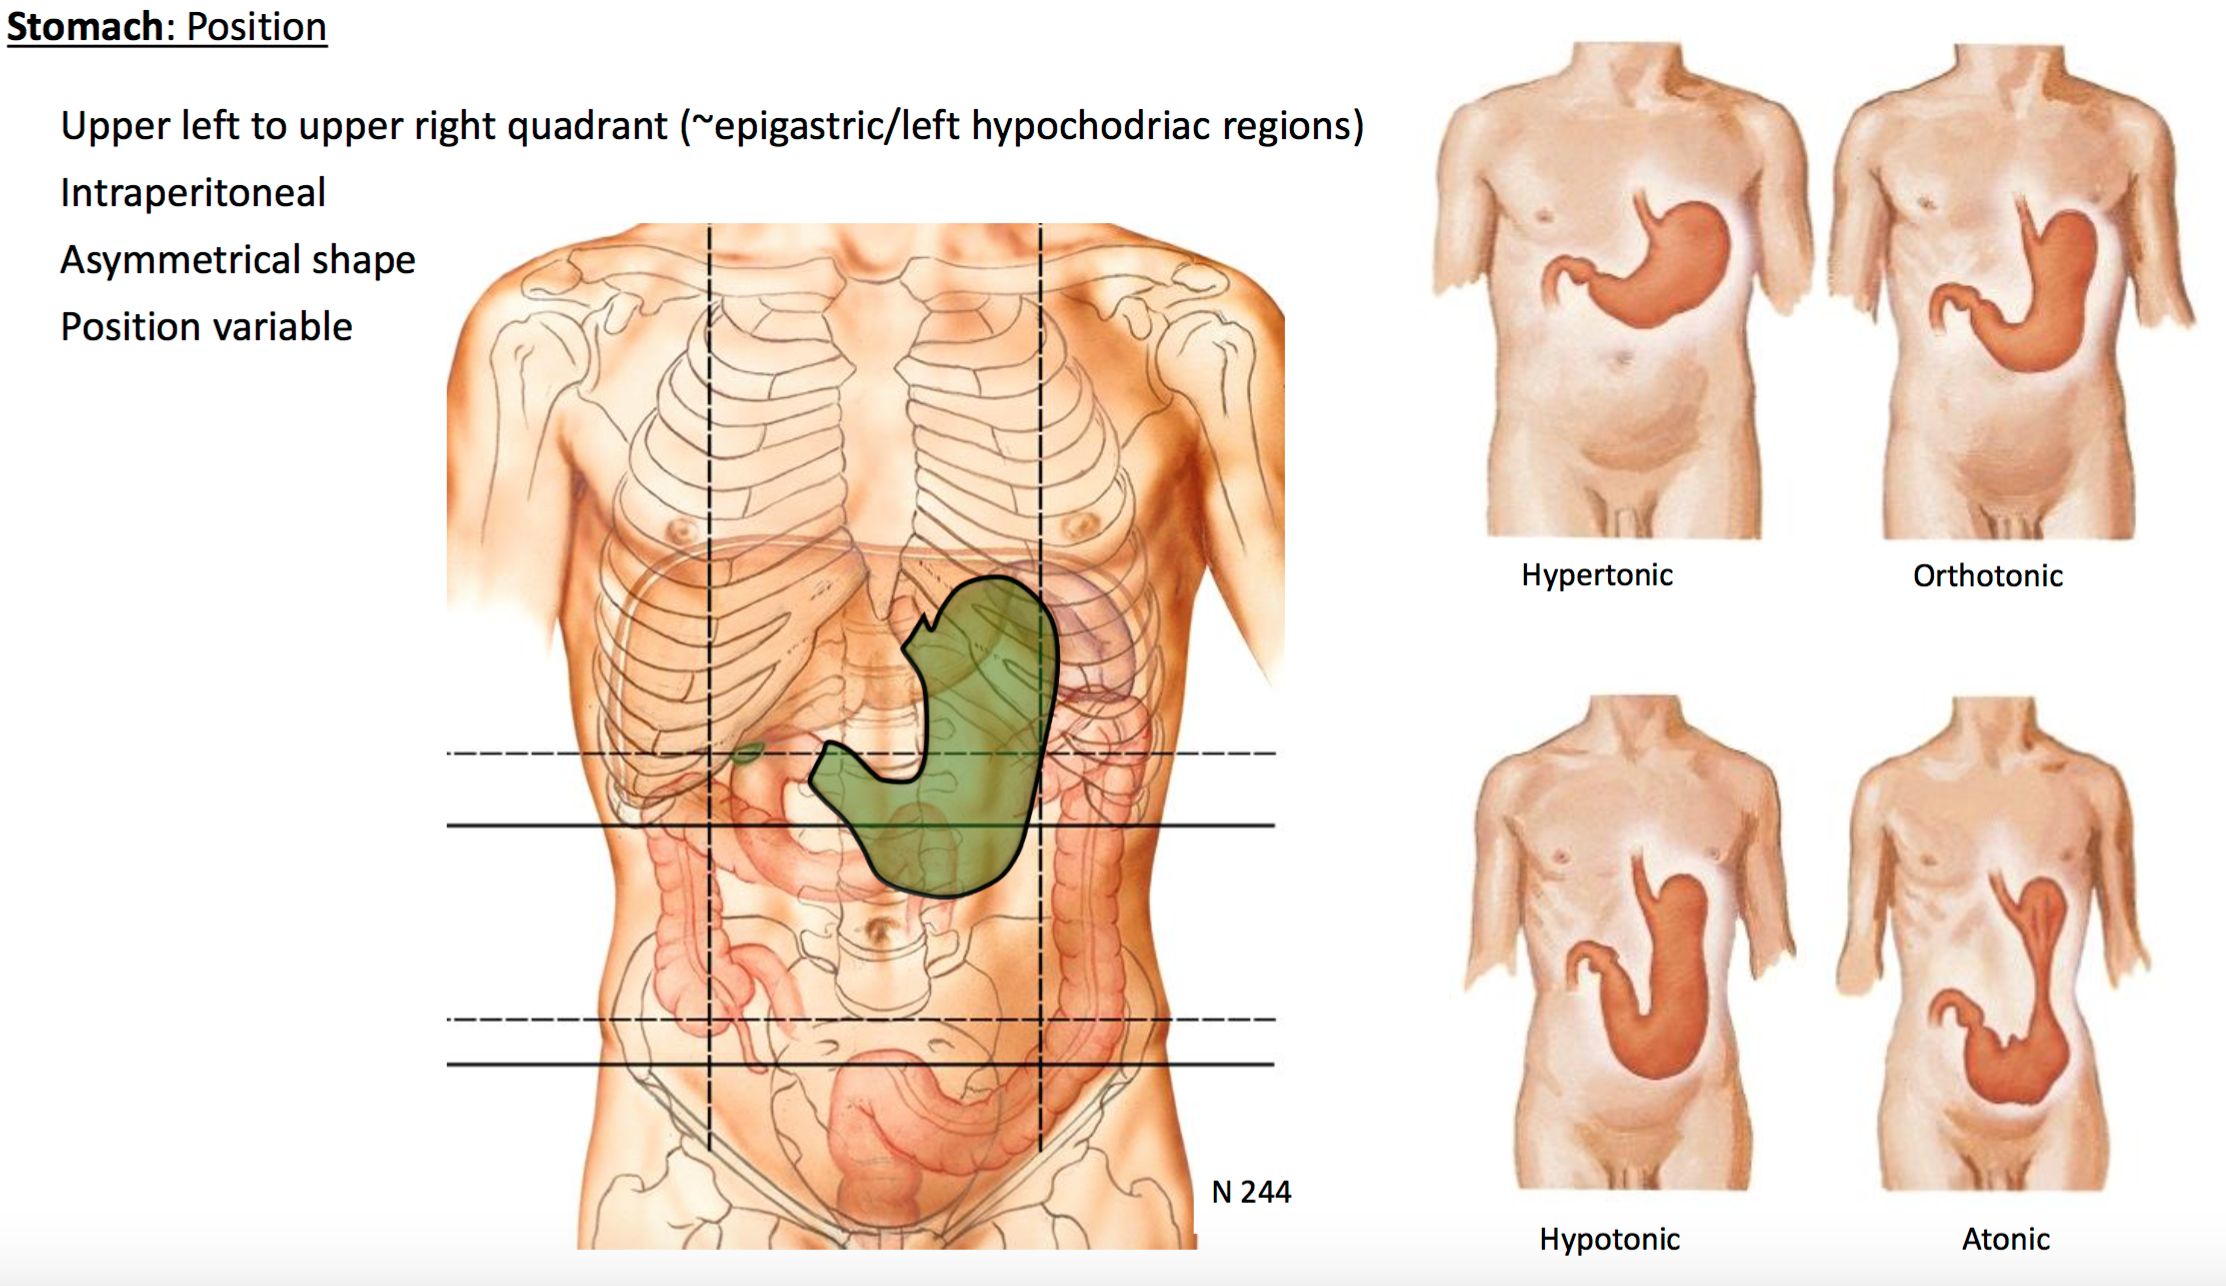 Gsanatomy g29 foregut i anatomy unit 4 flashcards memorang since the stomach is position variable it can be seen in different positions such as ccuart Choice Image